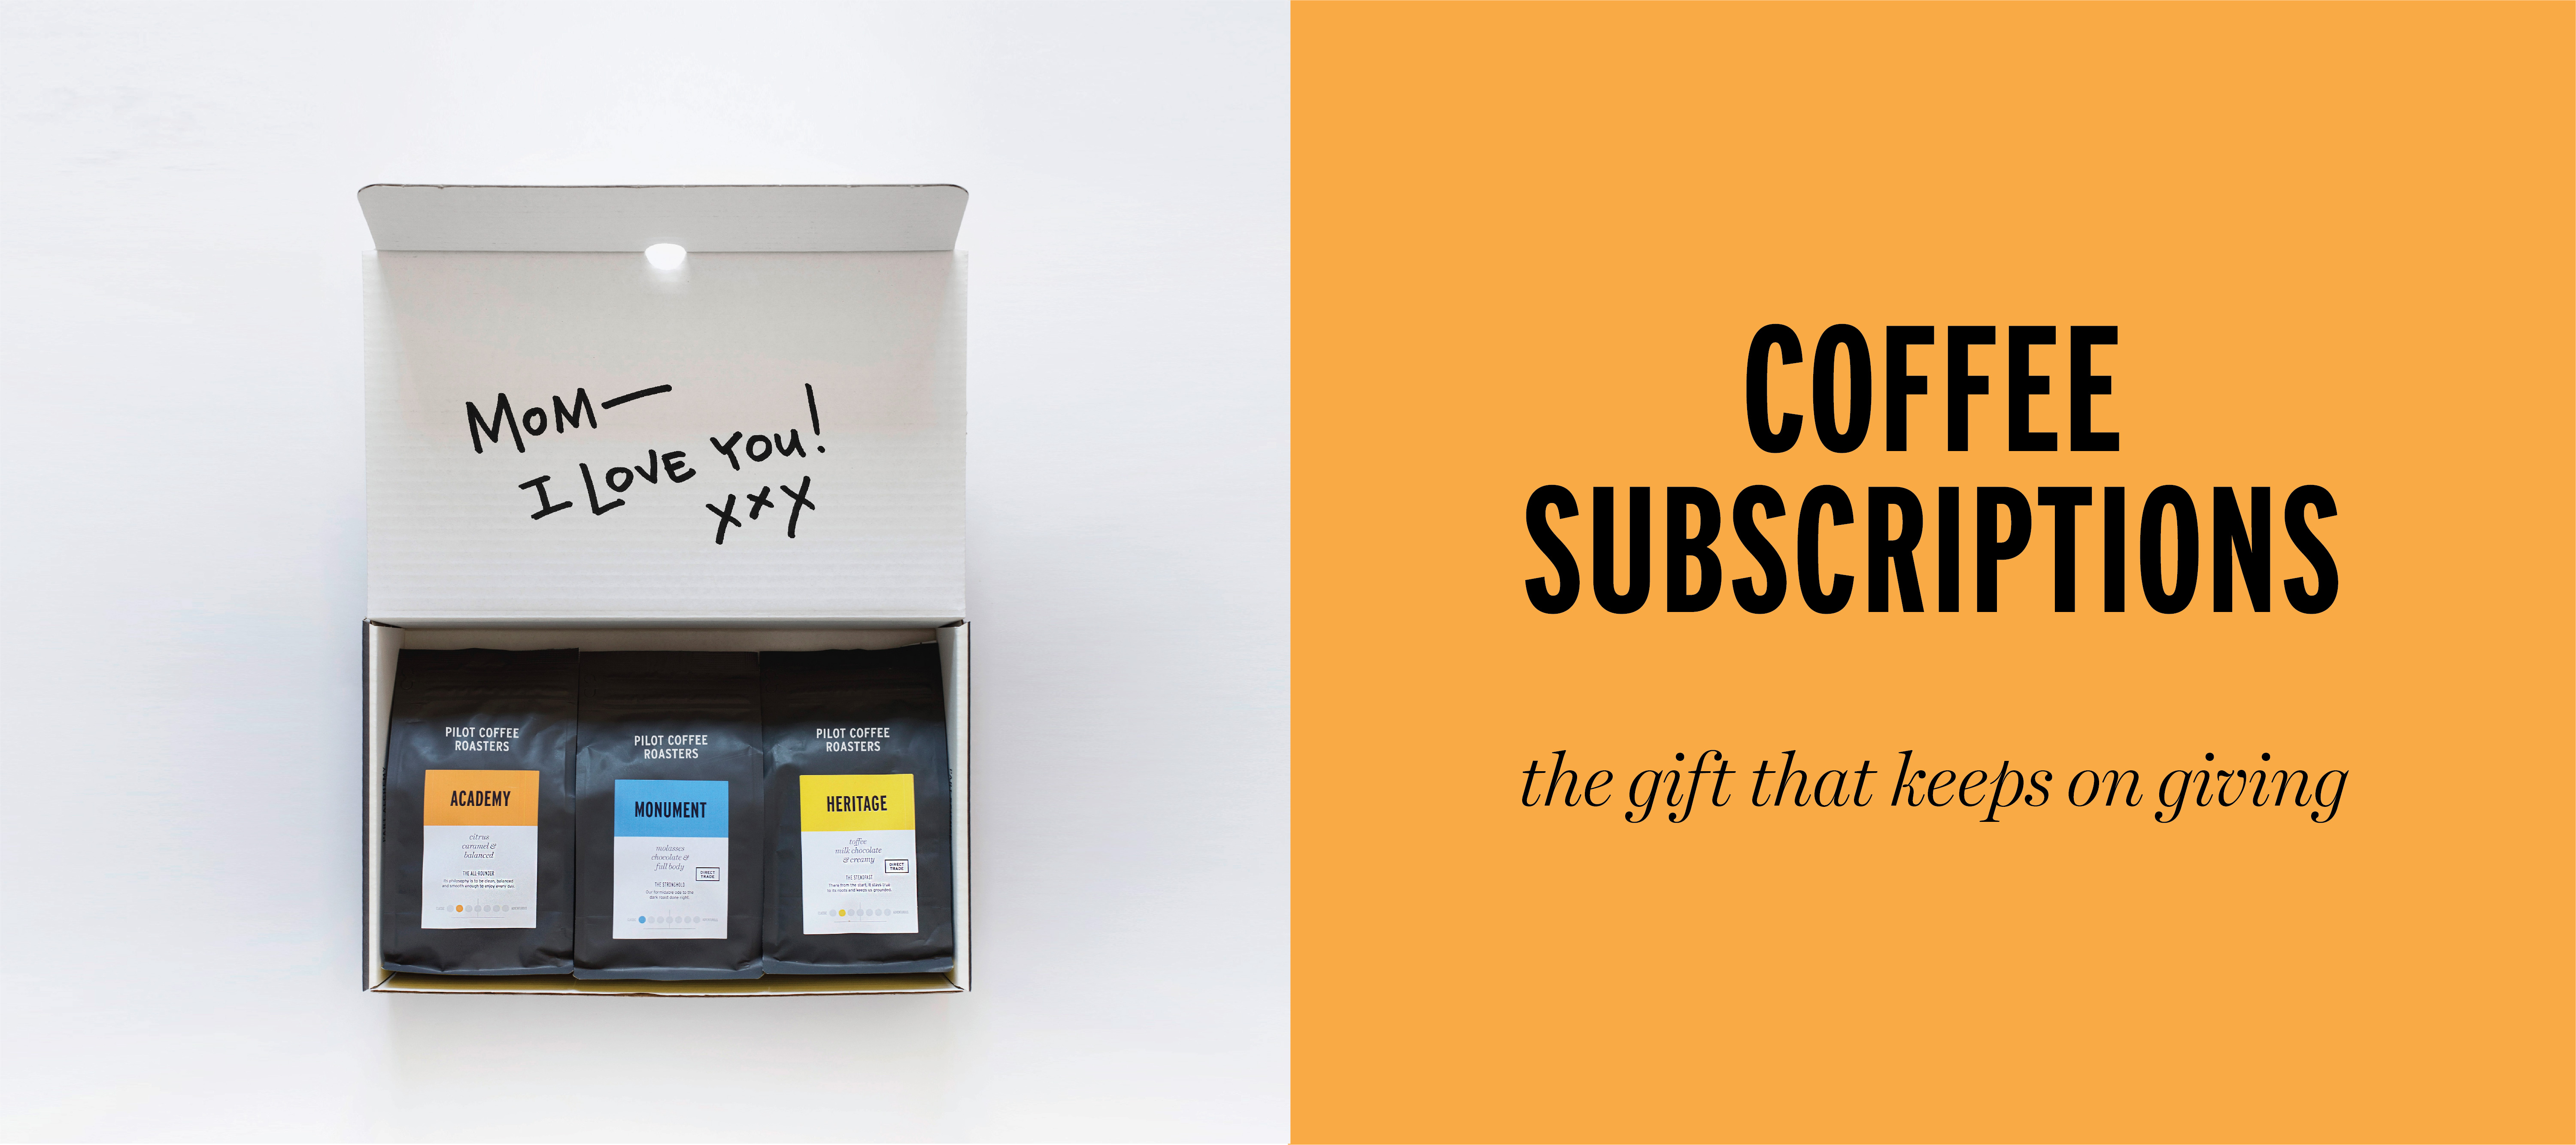 Coffee subscriptions, pre-paid and pay-as-you-go, flexible and convenient